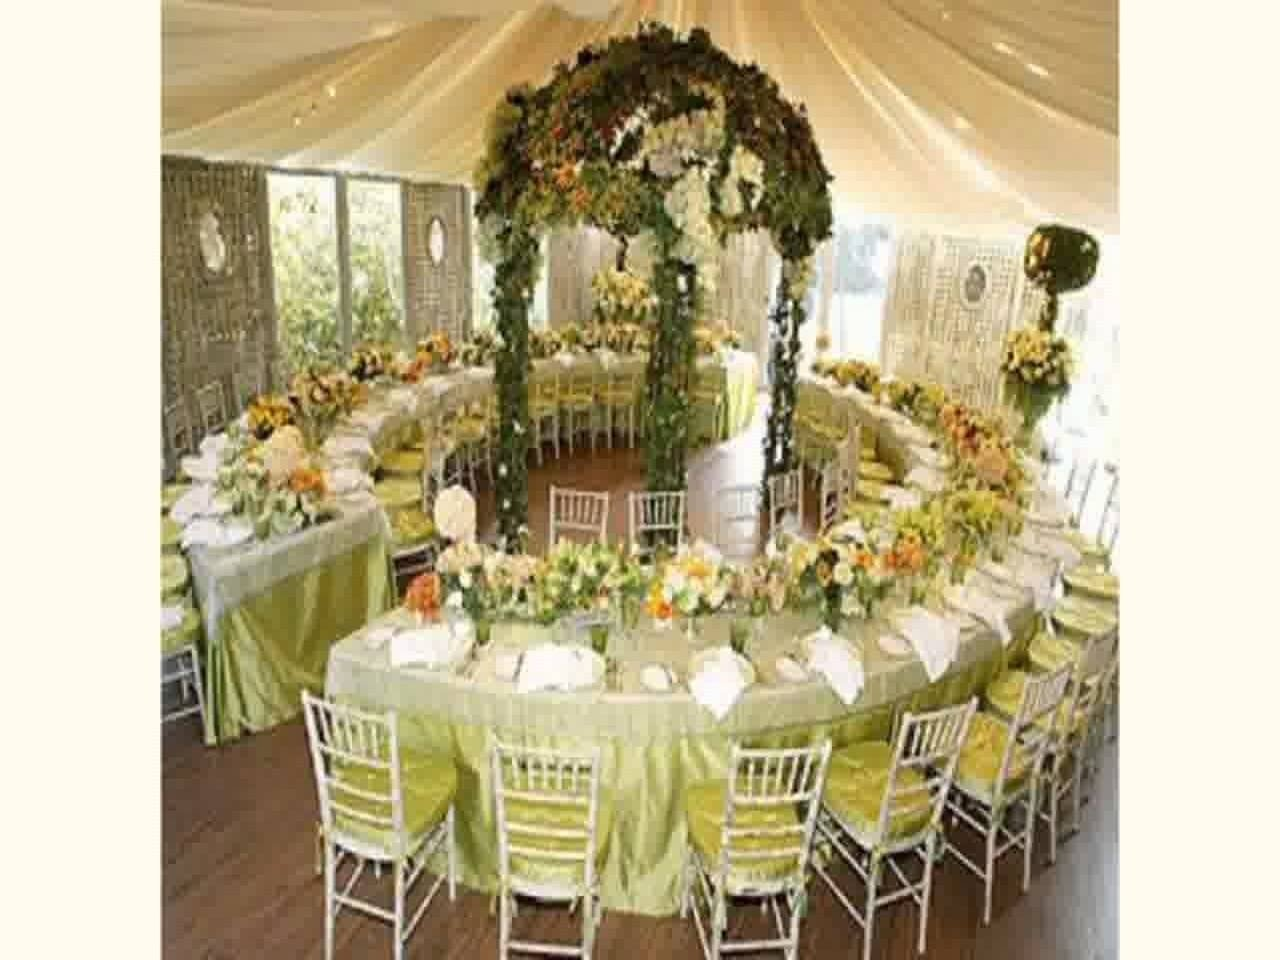 10 Lovely Reception Ideas For Small Weddings new wedding venue decoration youtube 2021